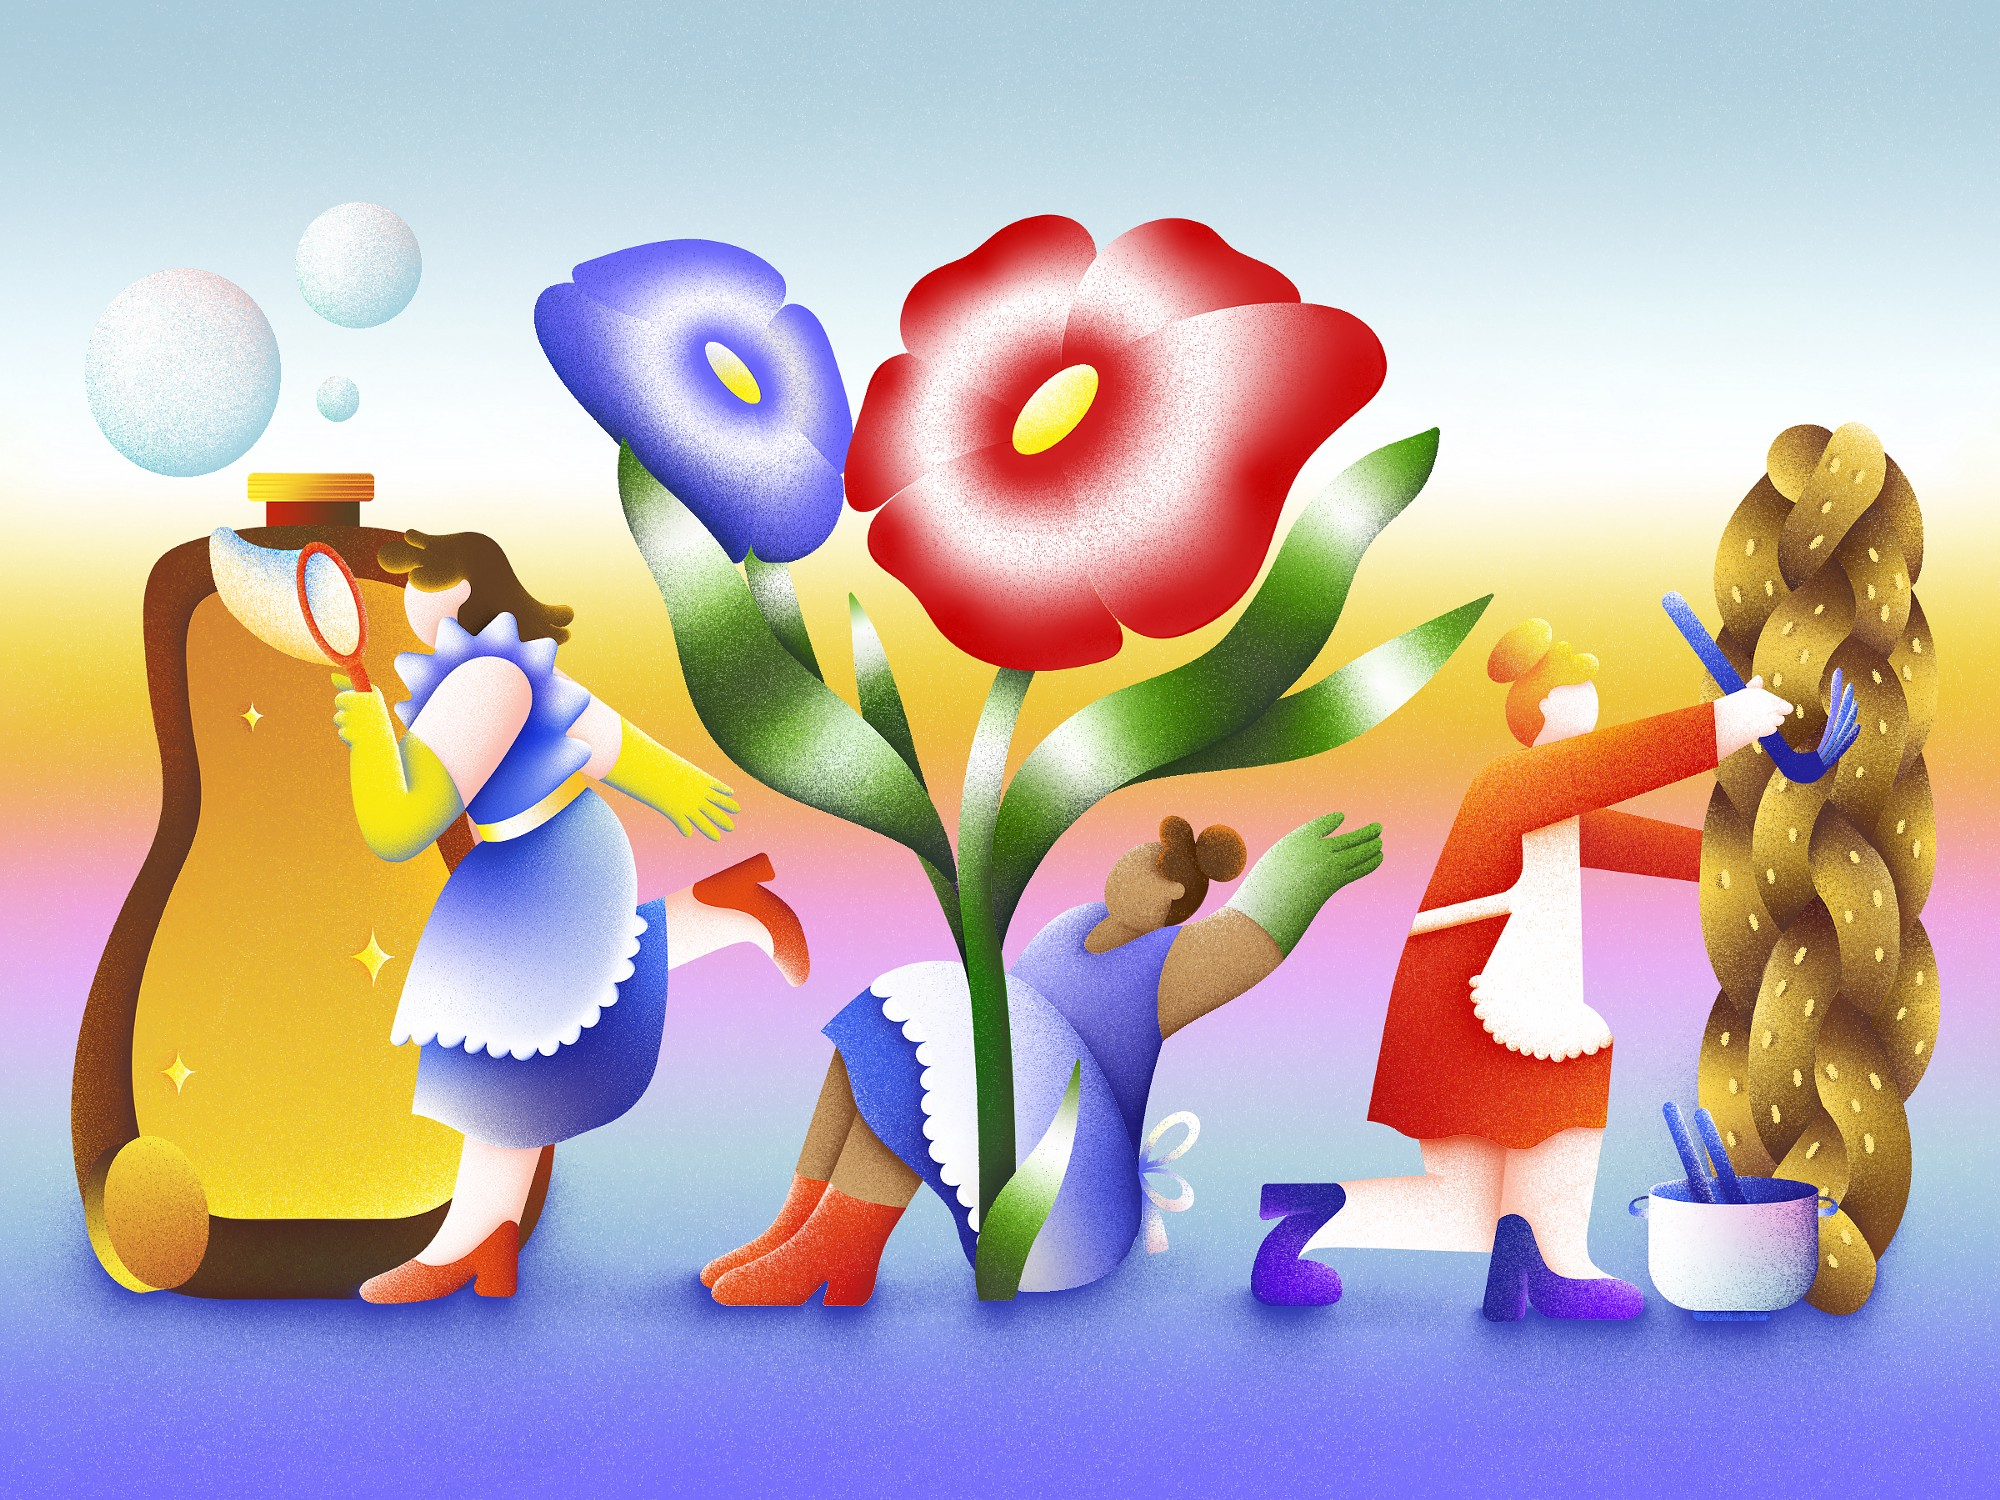 An illustration of three women characters cleaning, gardening, and doing other household chores.